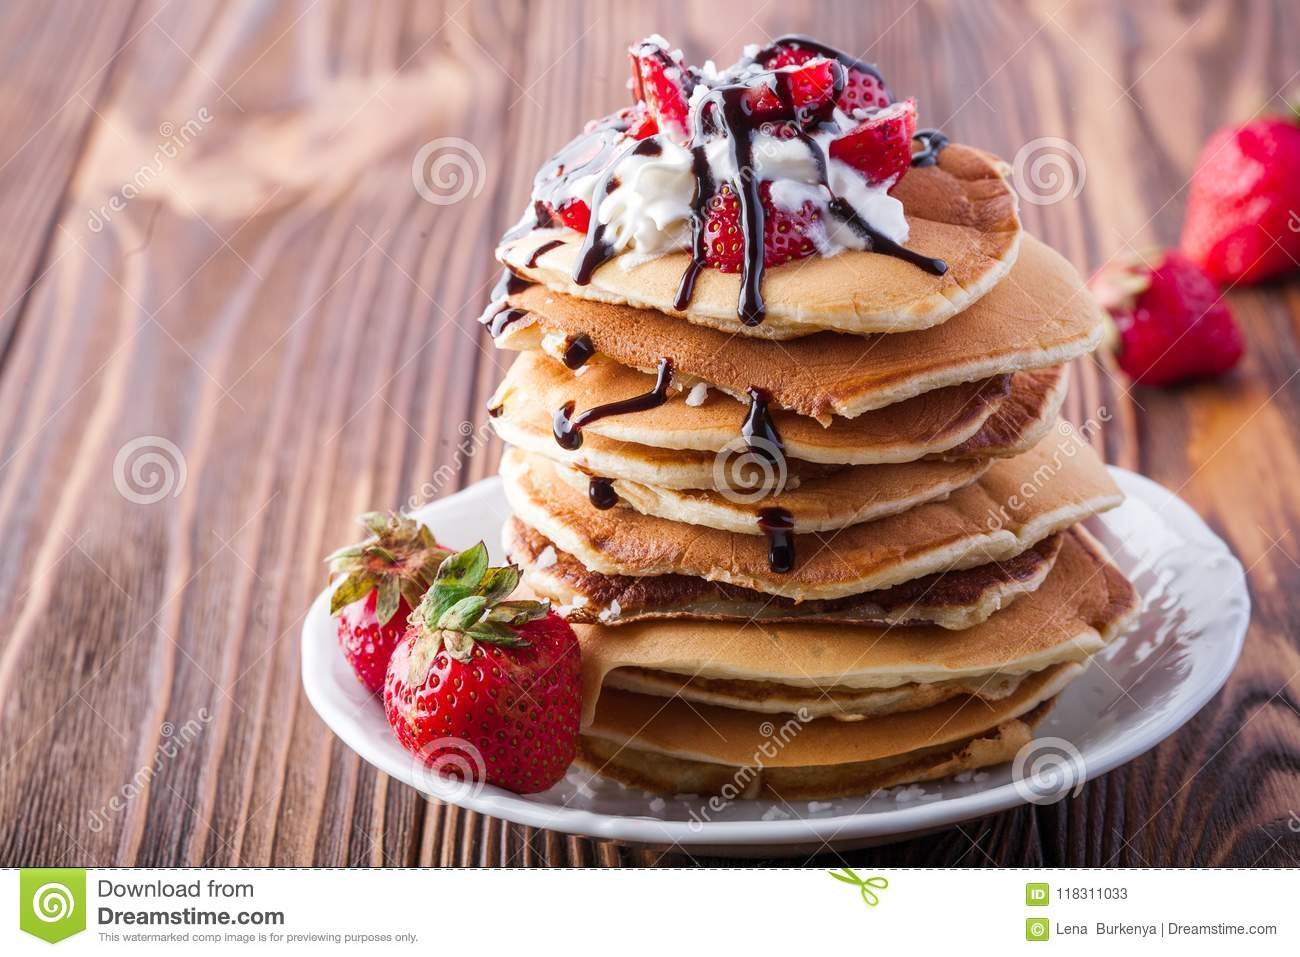 Stack Of Pancakes With Strawberries Whip Cream And Chocolate Syrup On A White Plate On A Wooden Background Stock Image Image Of Maple Fruit 118311033